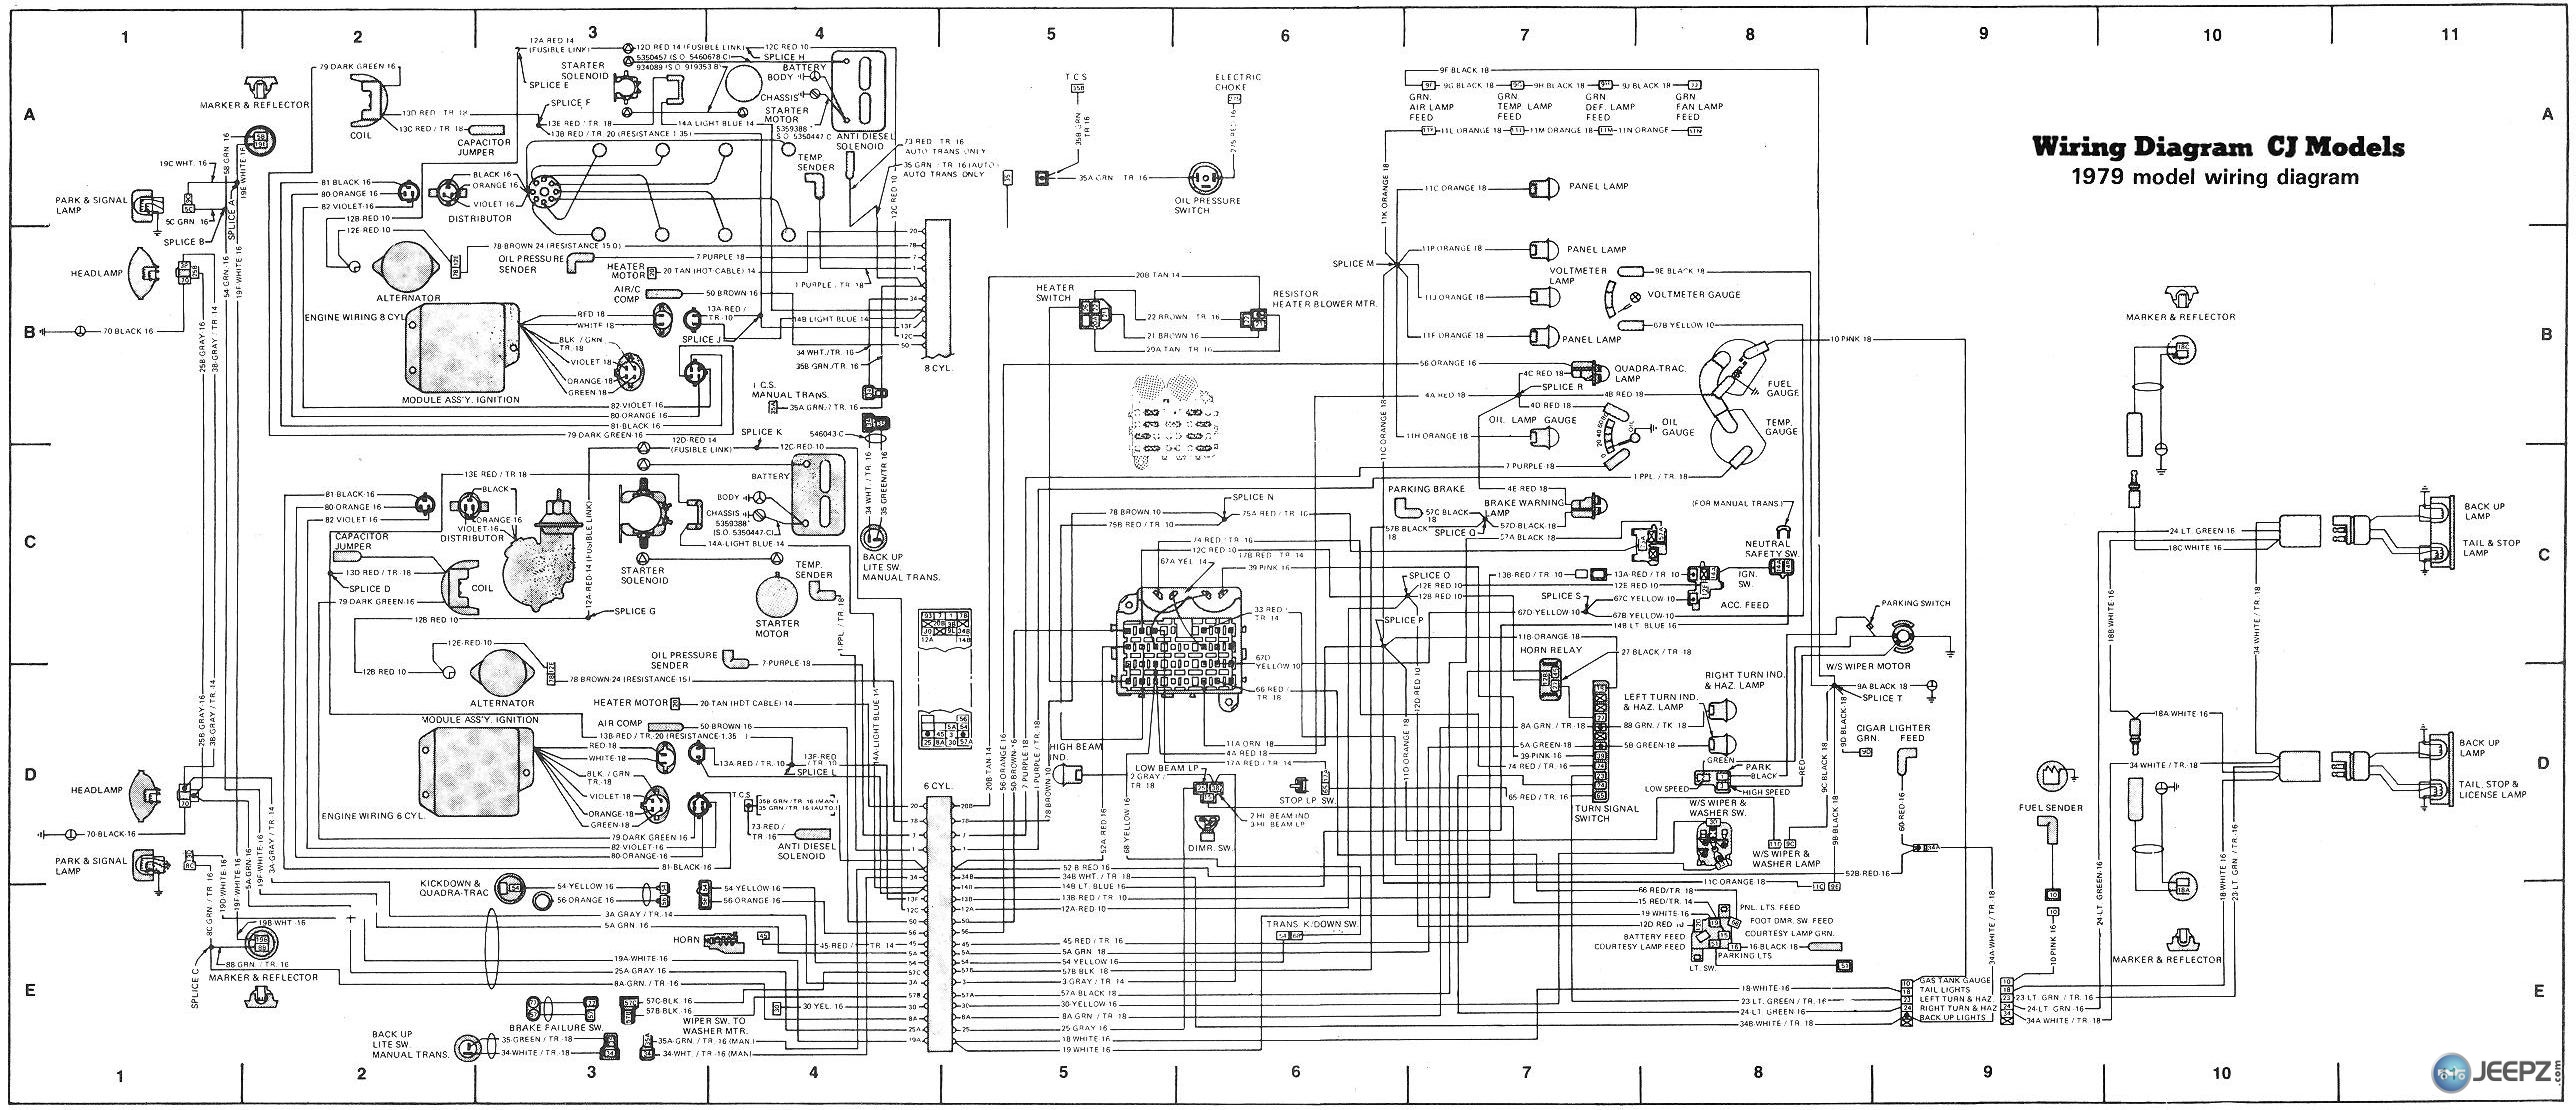 Headlight Switch Wiring Diagram For Jeep Cj 7 Just Data Blower Motor Cj7 Content Resource Of U2022